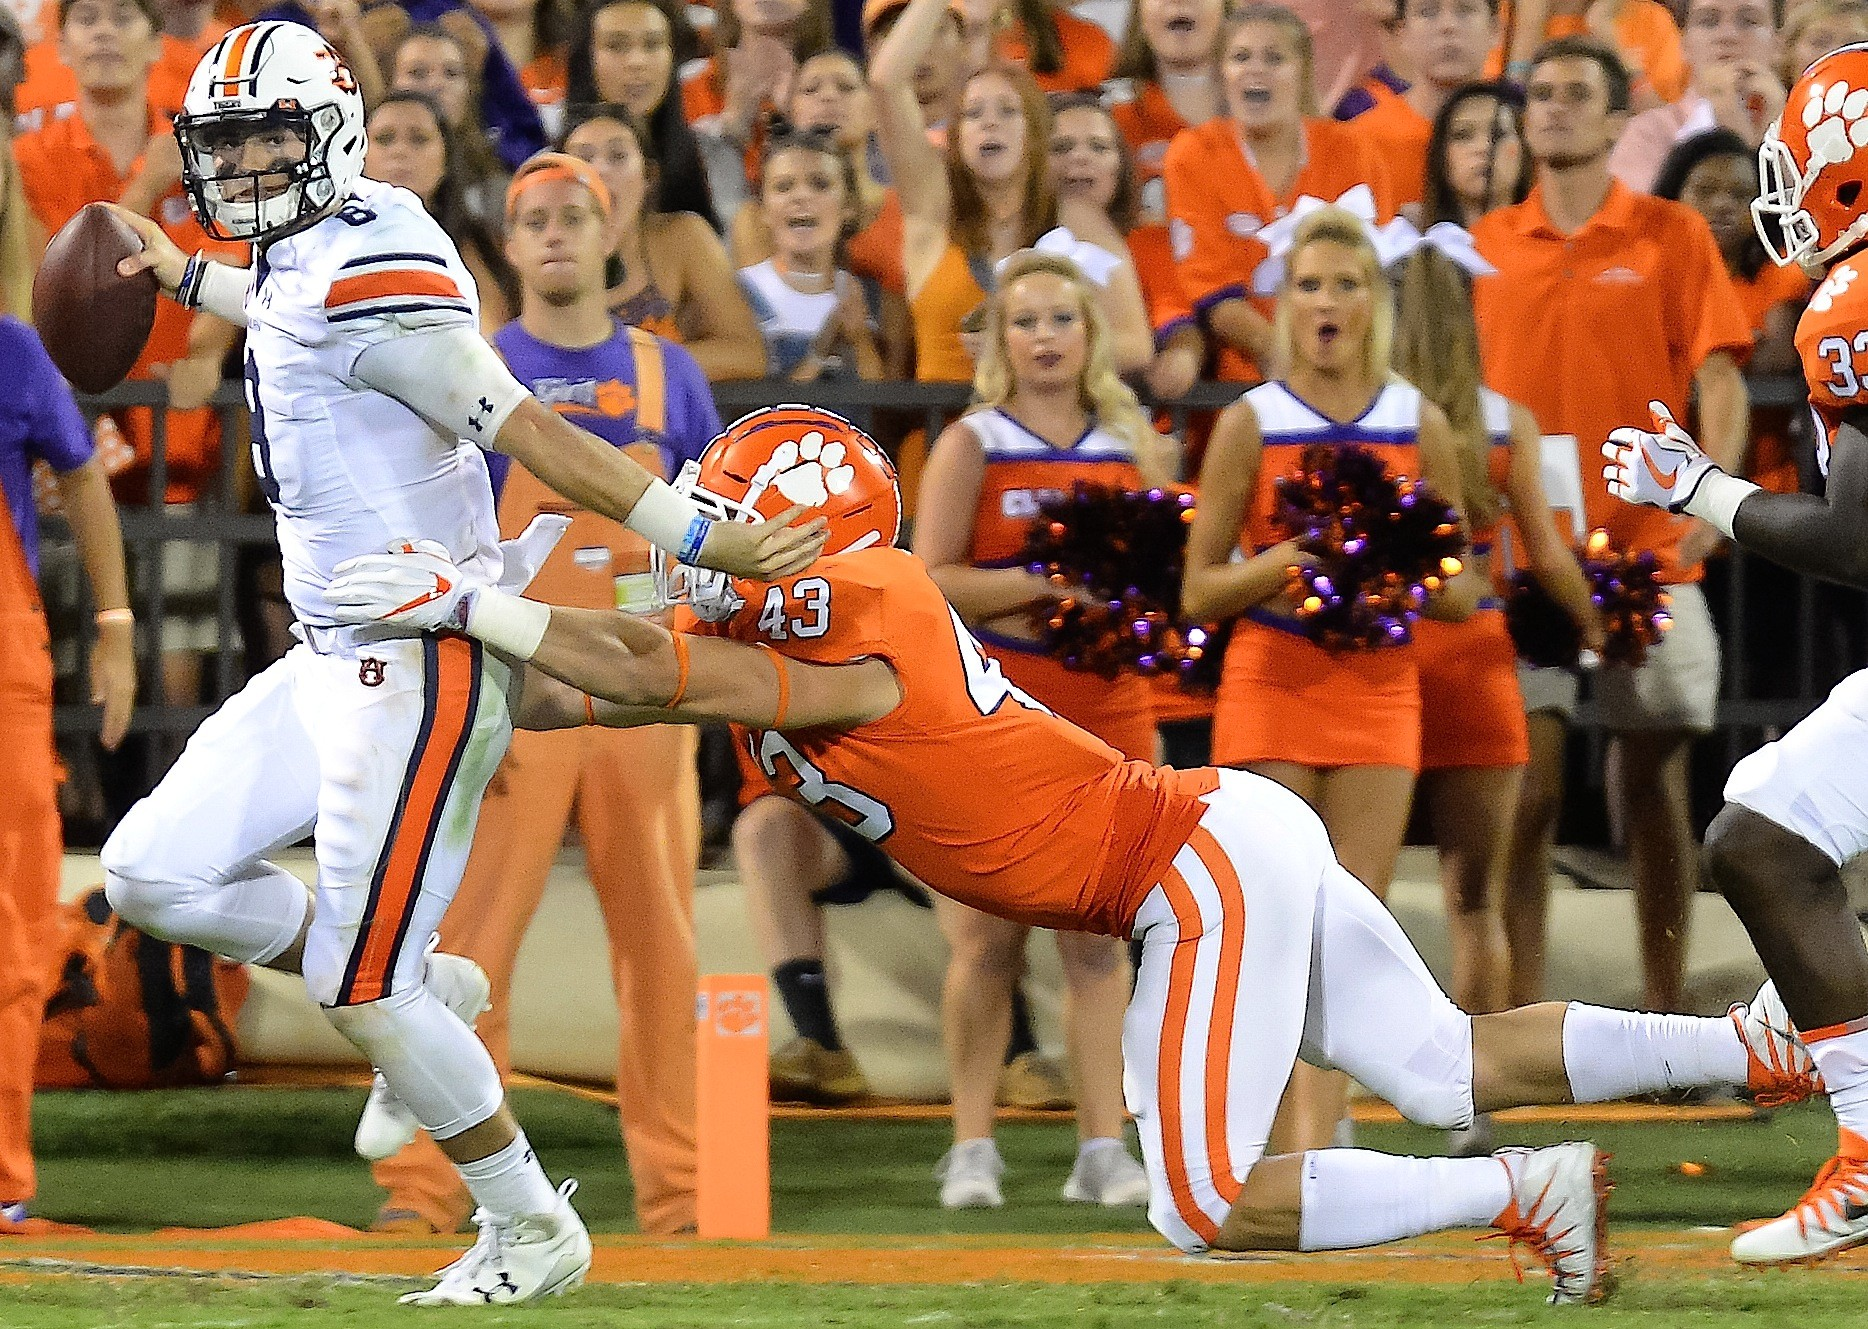 Auburn Tigers quarterback Jarrett Stidham (8) is pressured by Clemson Tigers linebacker Chad Smith (43) during the second half of their game Saturday at Memorial Stadium in Clemson, South Carolina.